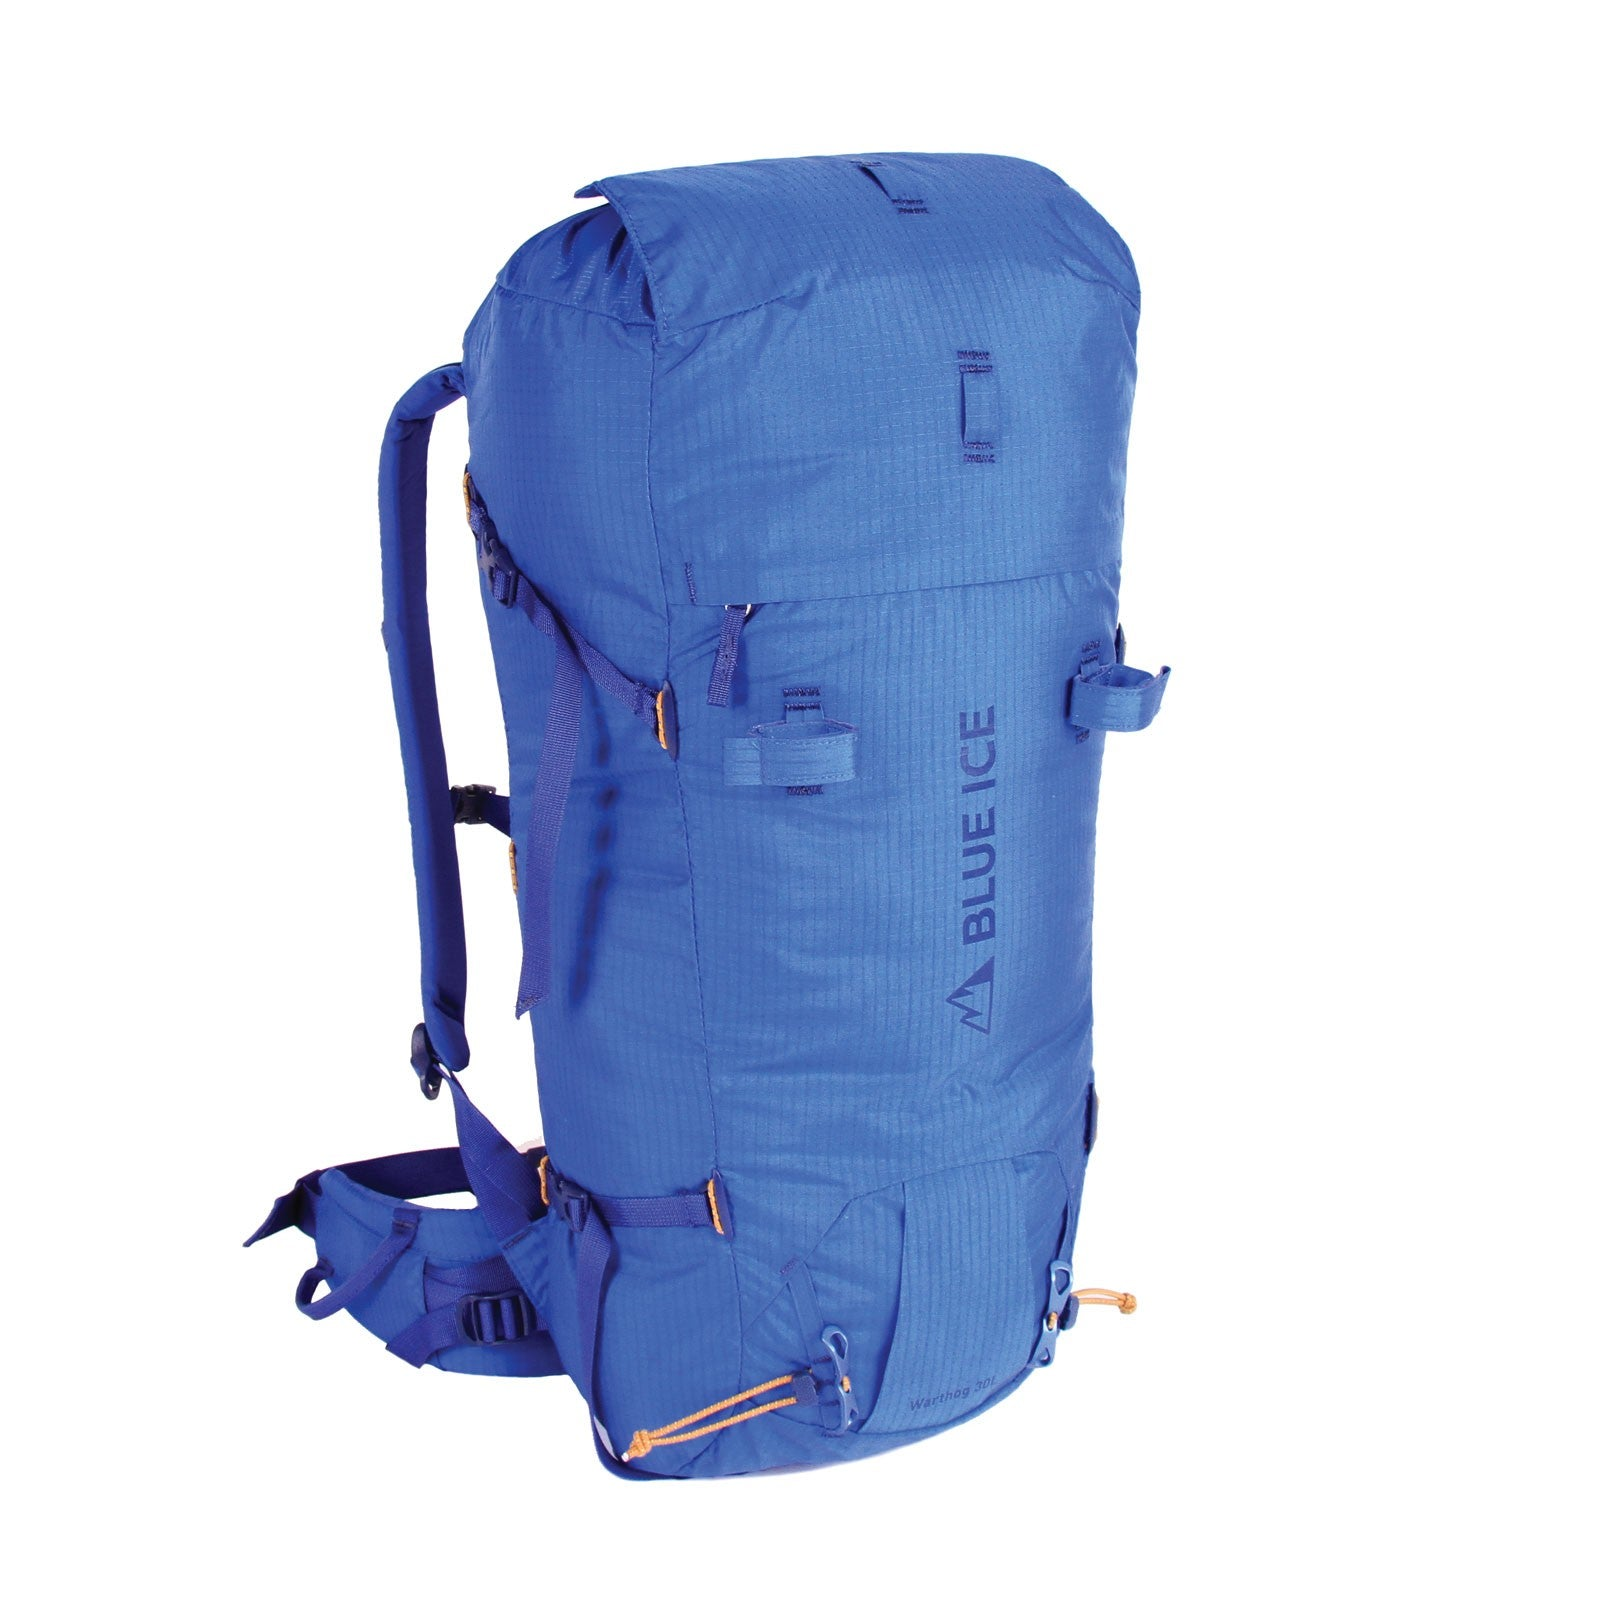 Blue Ice Warthog 30L rucksack, front/side view in blue colour